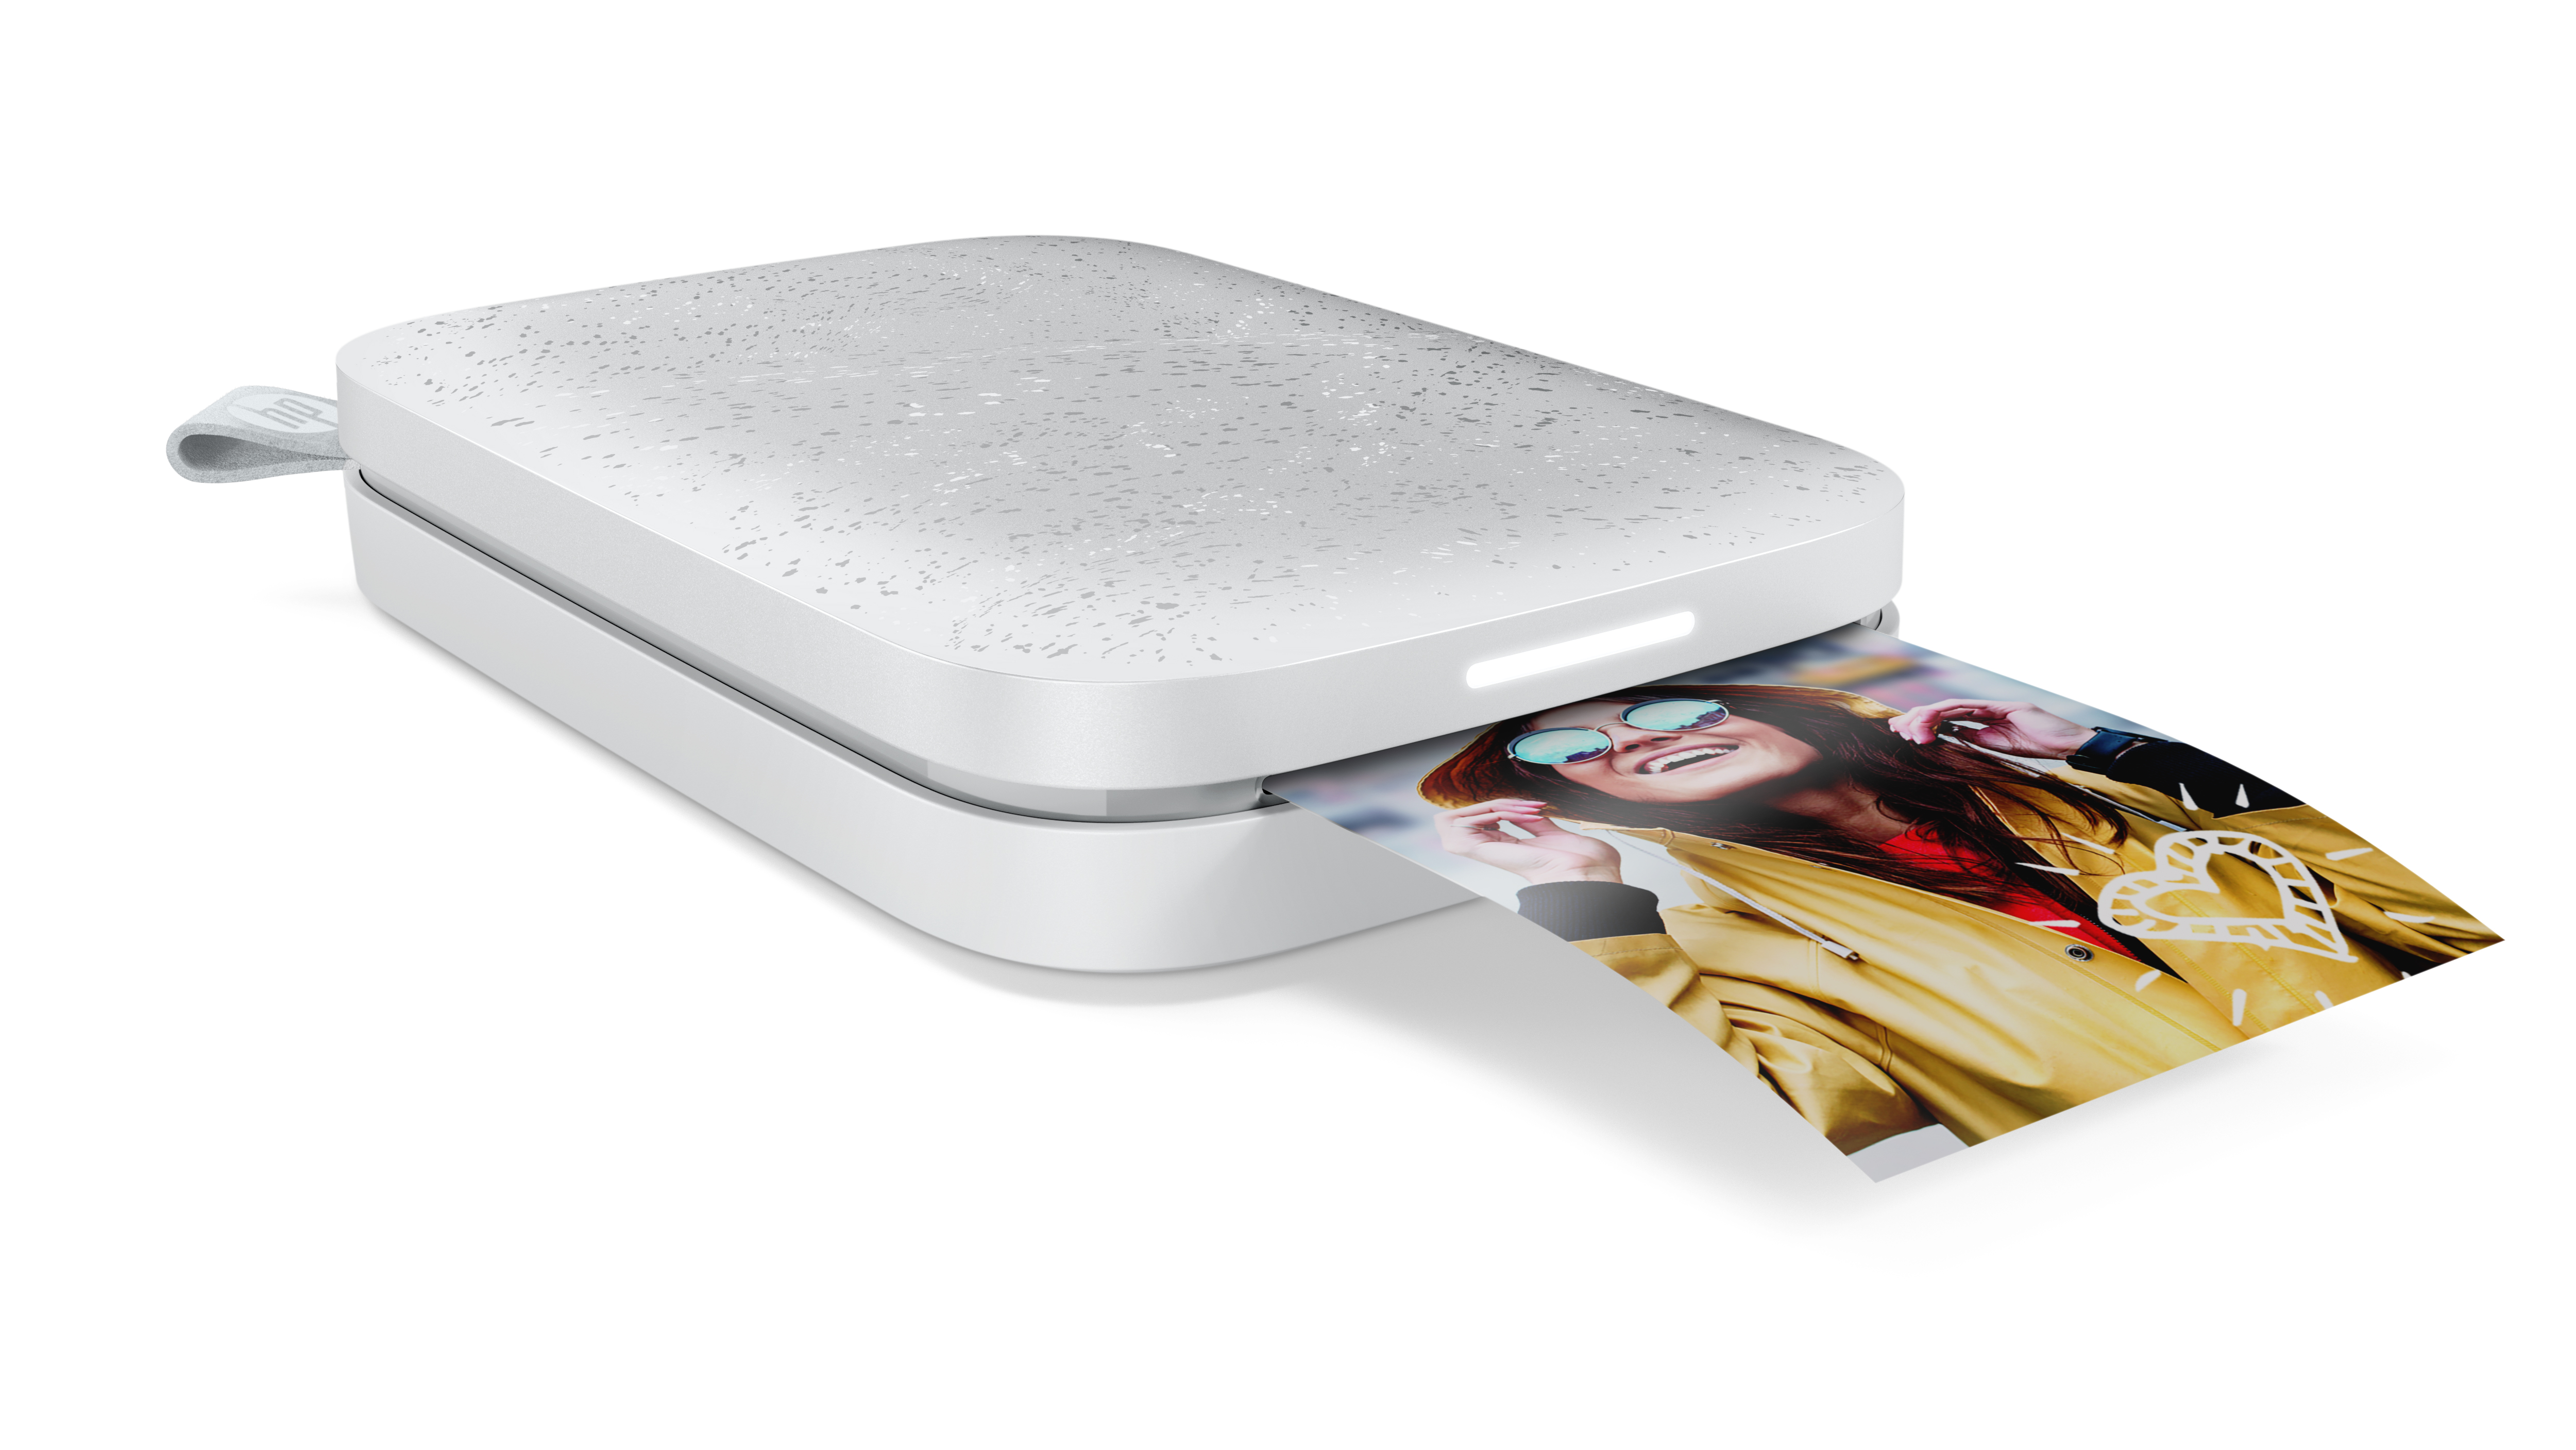 HP Sprocket Puts Photo Printing in Your Pocket